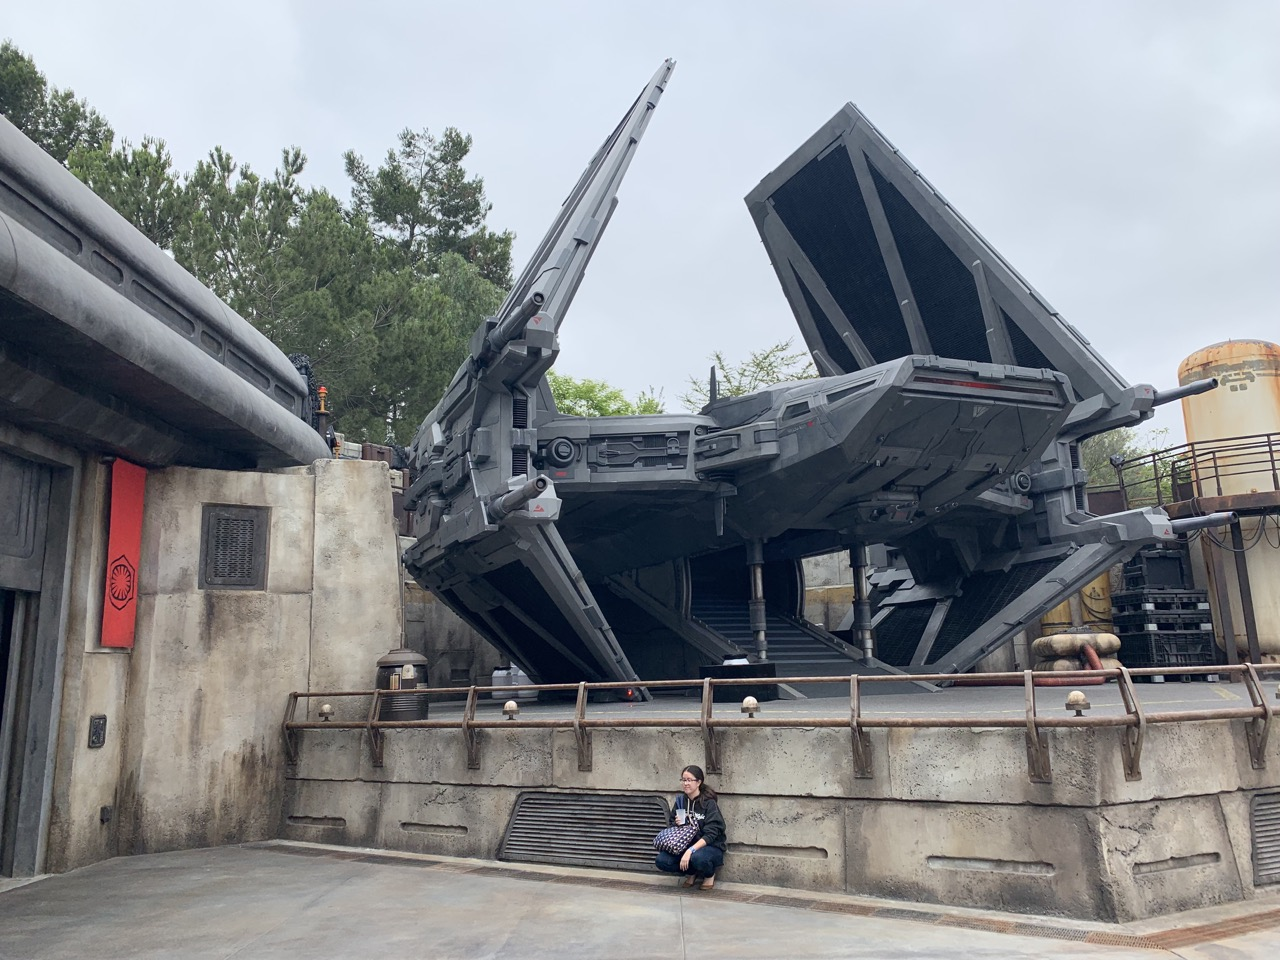 star wars land disneyland galaxys edge plan touring strategy 6.jpeg